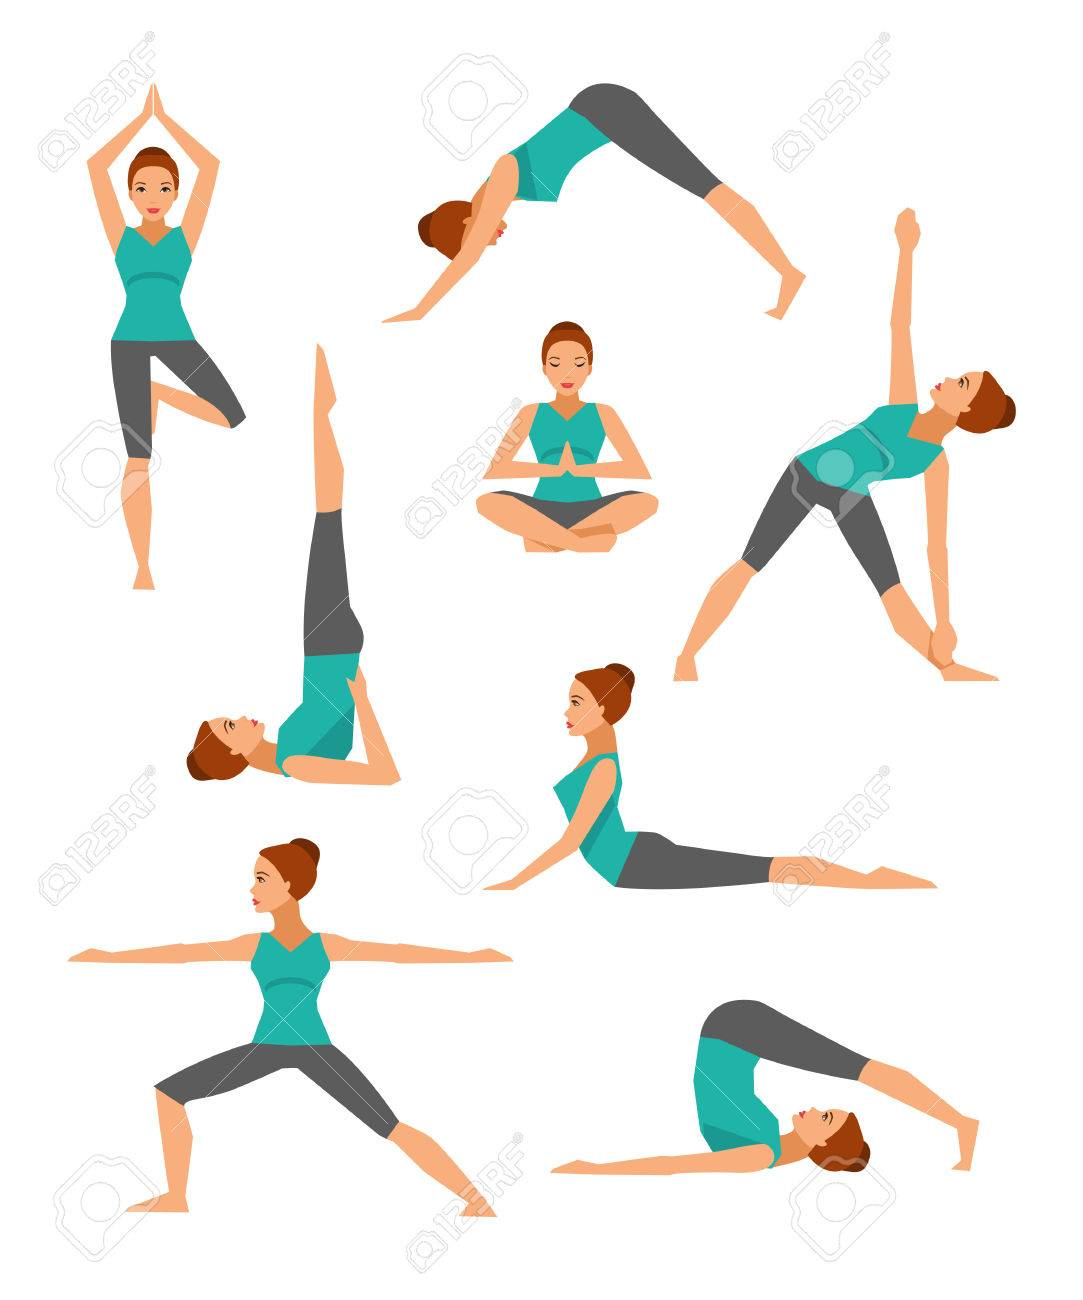 Collection Of Basic Yoga Asanas Healthy Lifestyle Royalty Free Cliparts Vectors And Stock Illustration Image 61405810